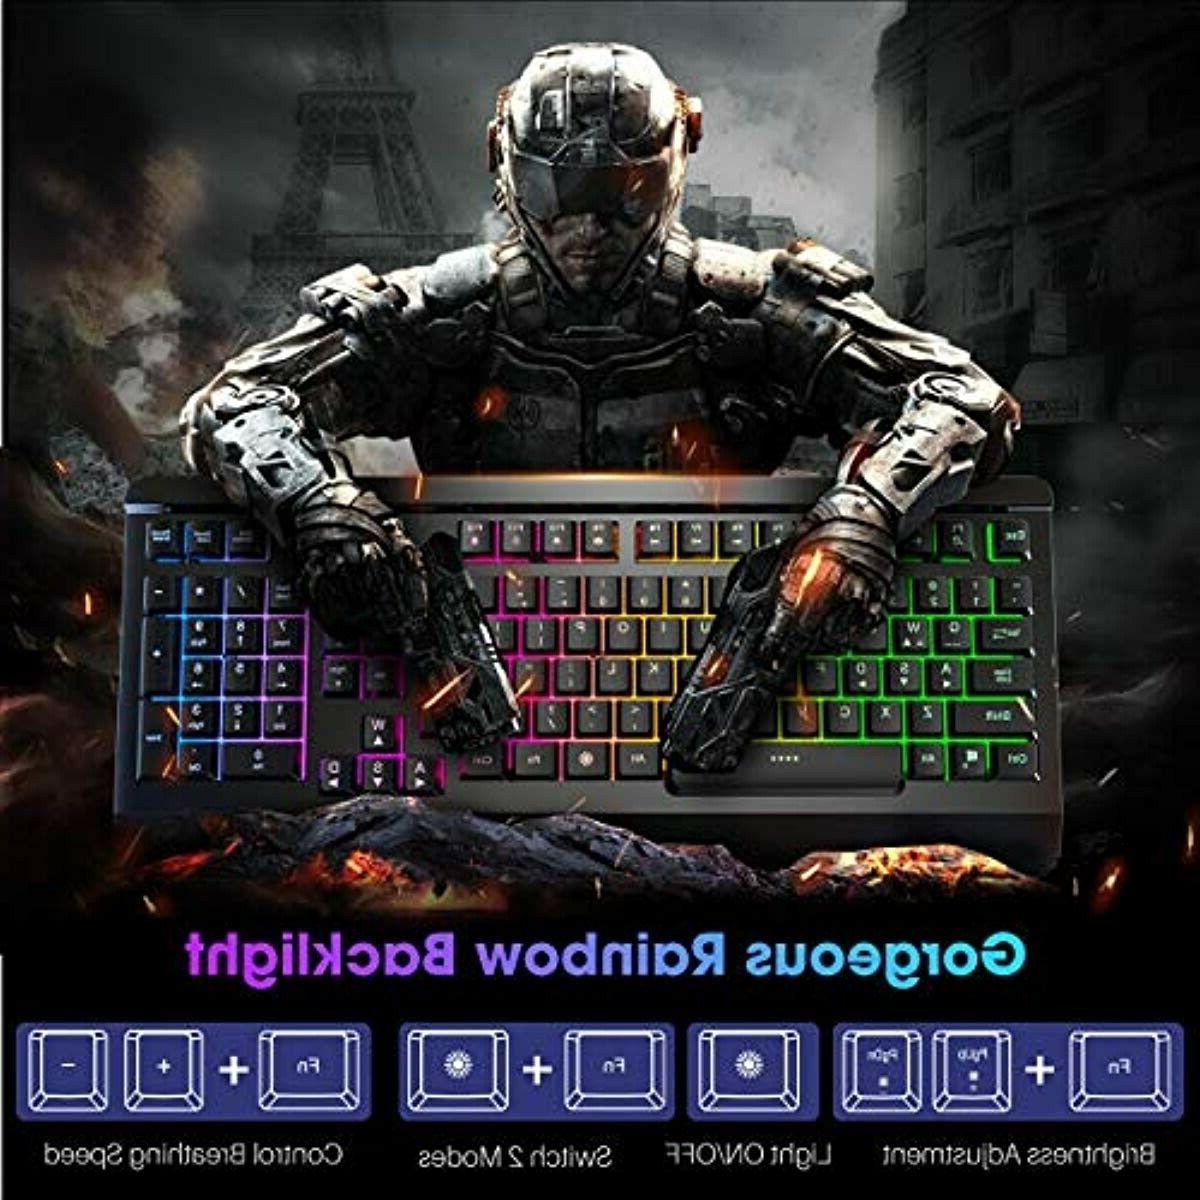 VicTsing Wired Quiet All-Metal Panel Spill-Resista